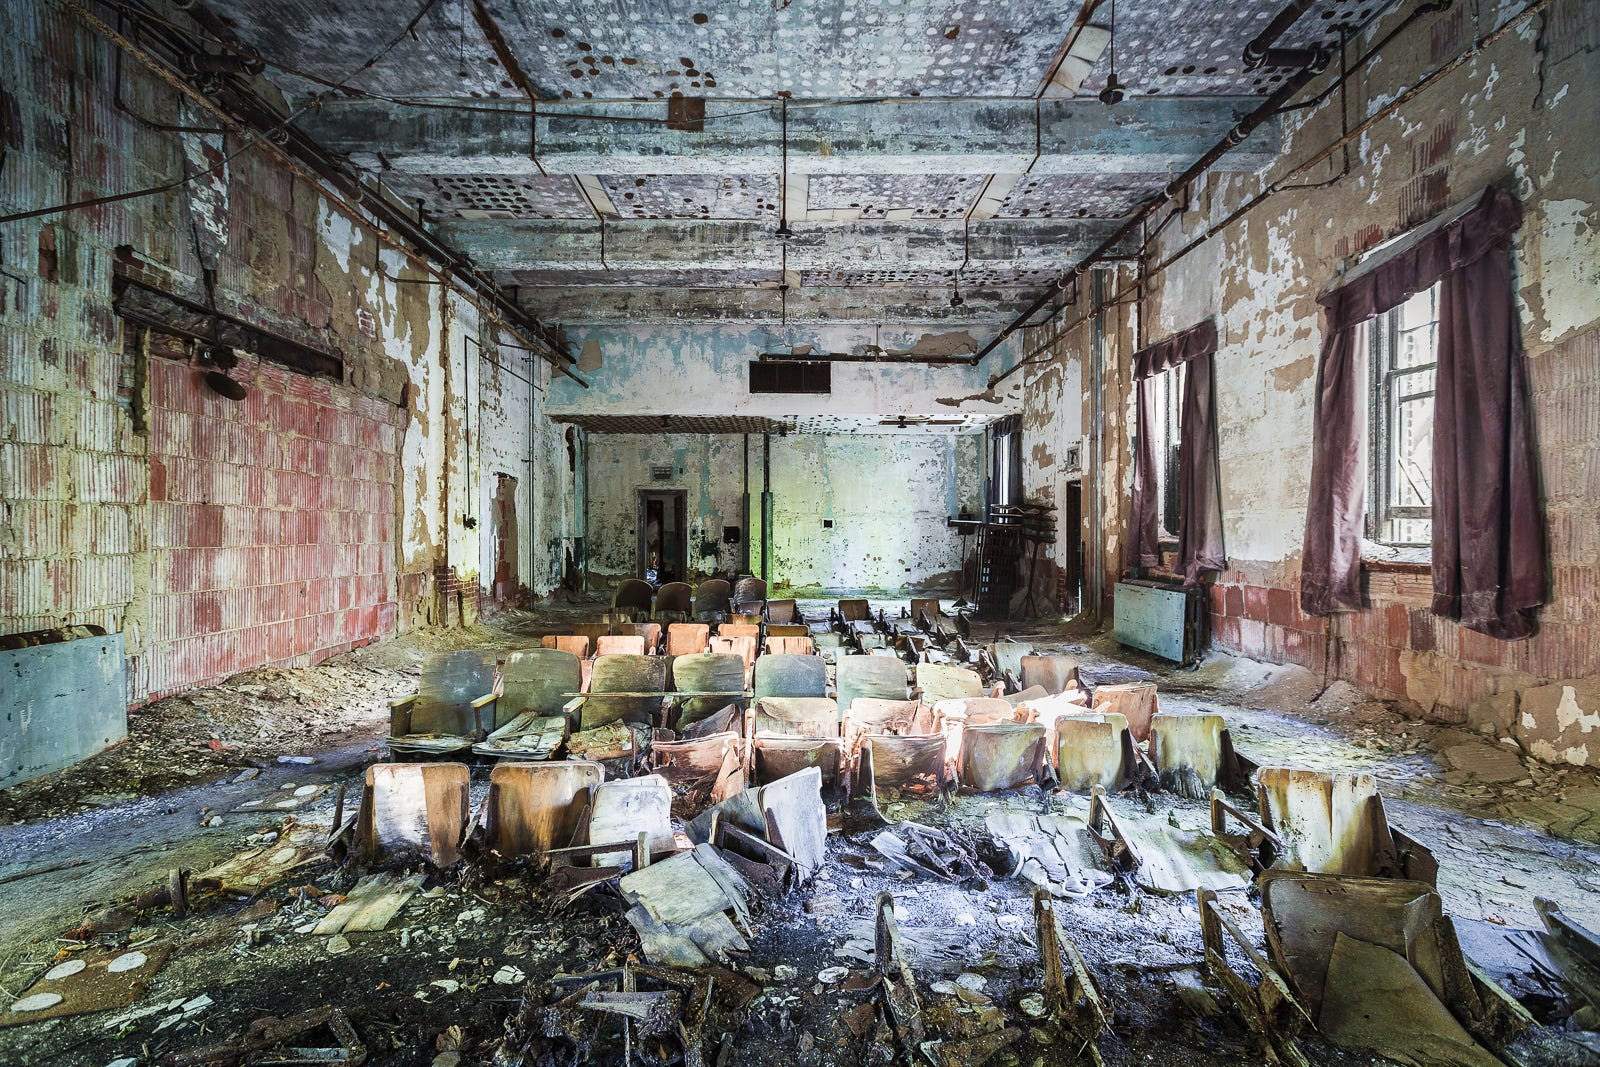 haunting nyc spots, spooky abandoned places